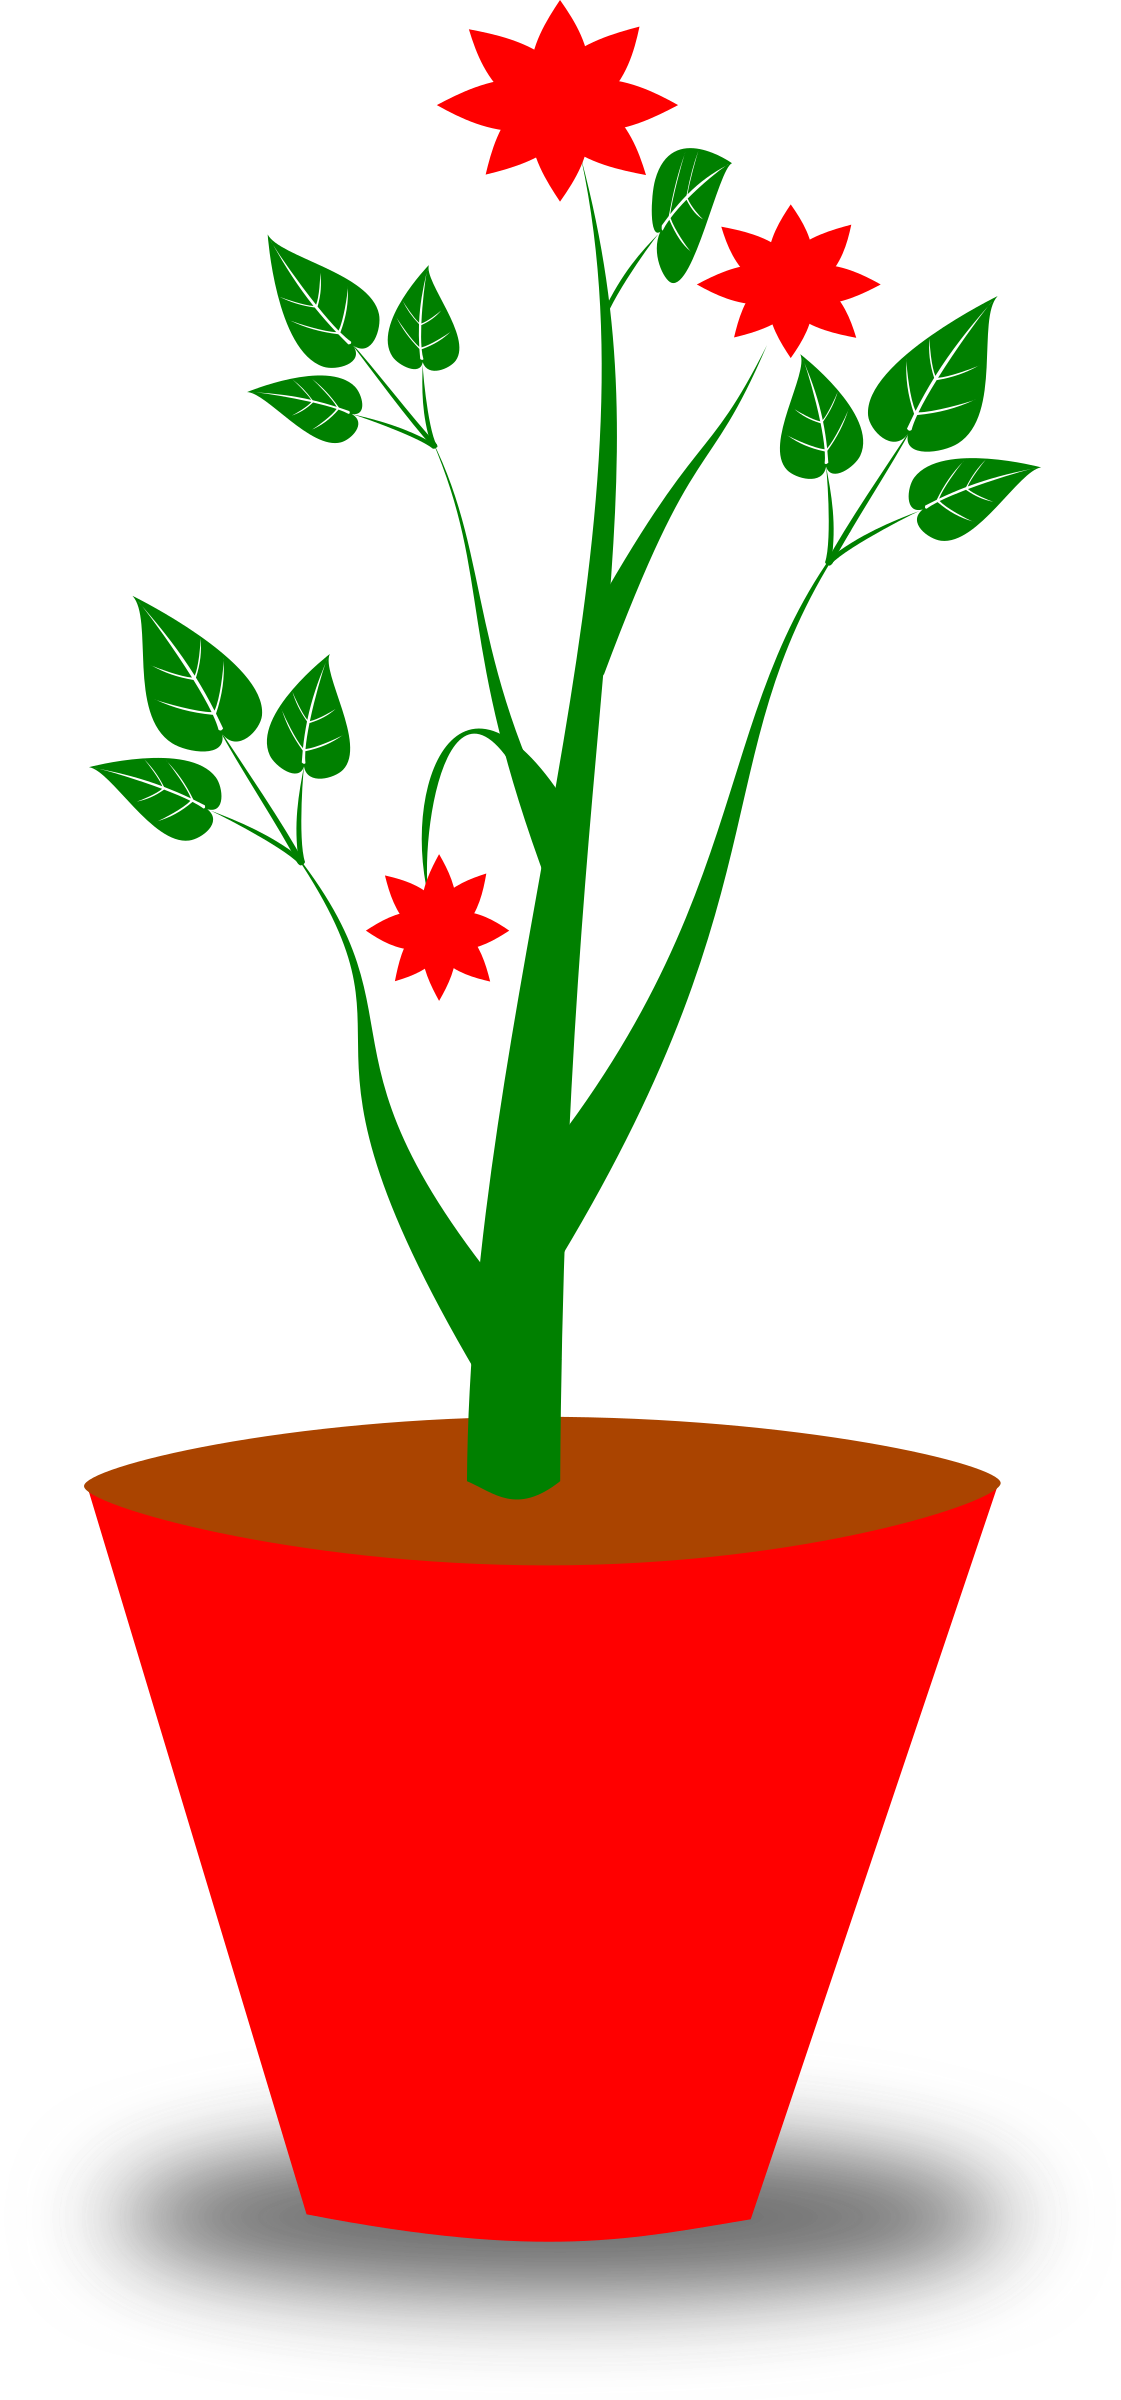 Planting flower clipart banner stock Clipart - Flower Pot banner stock